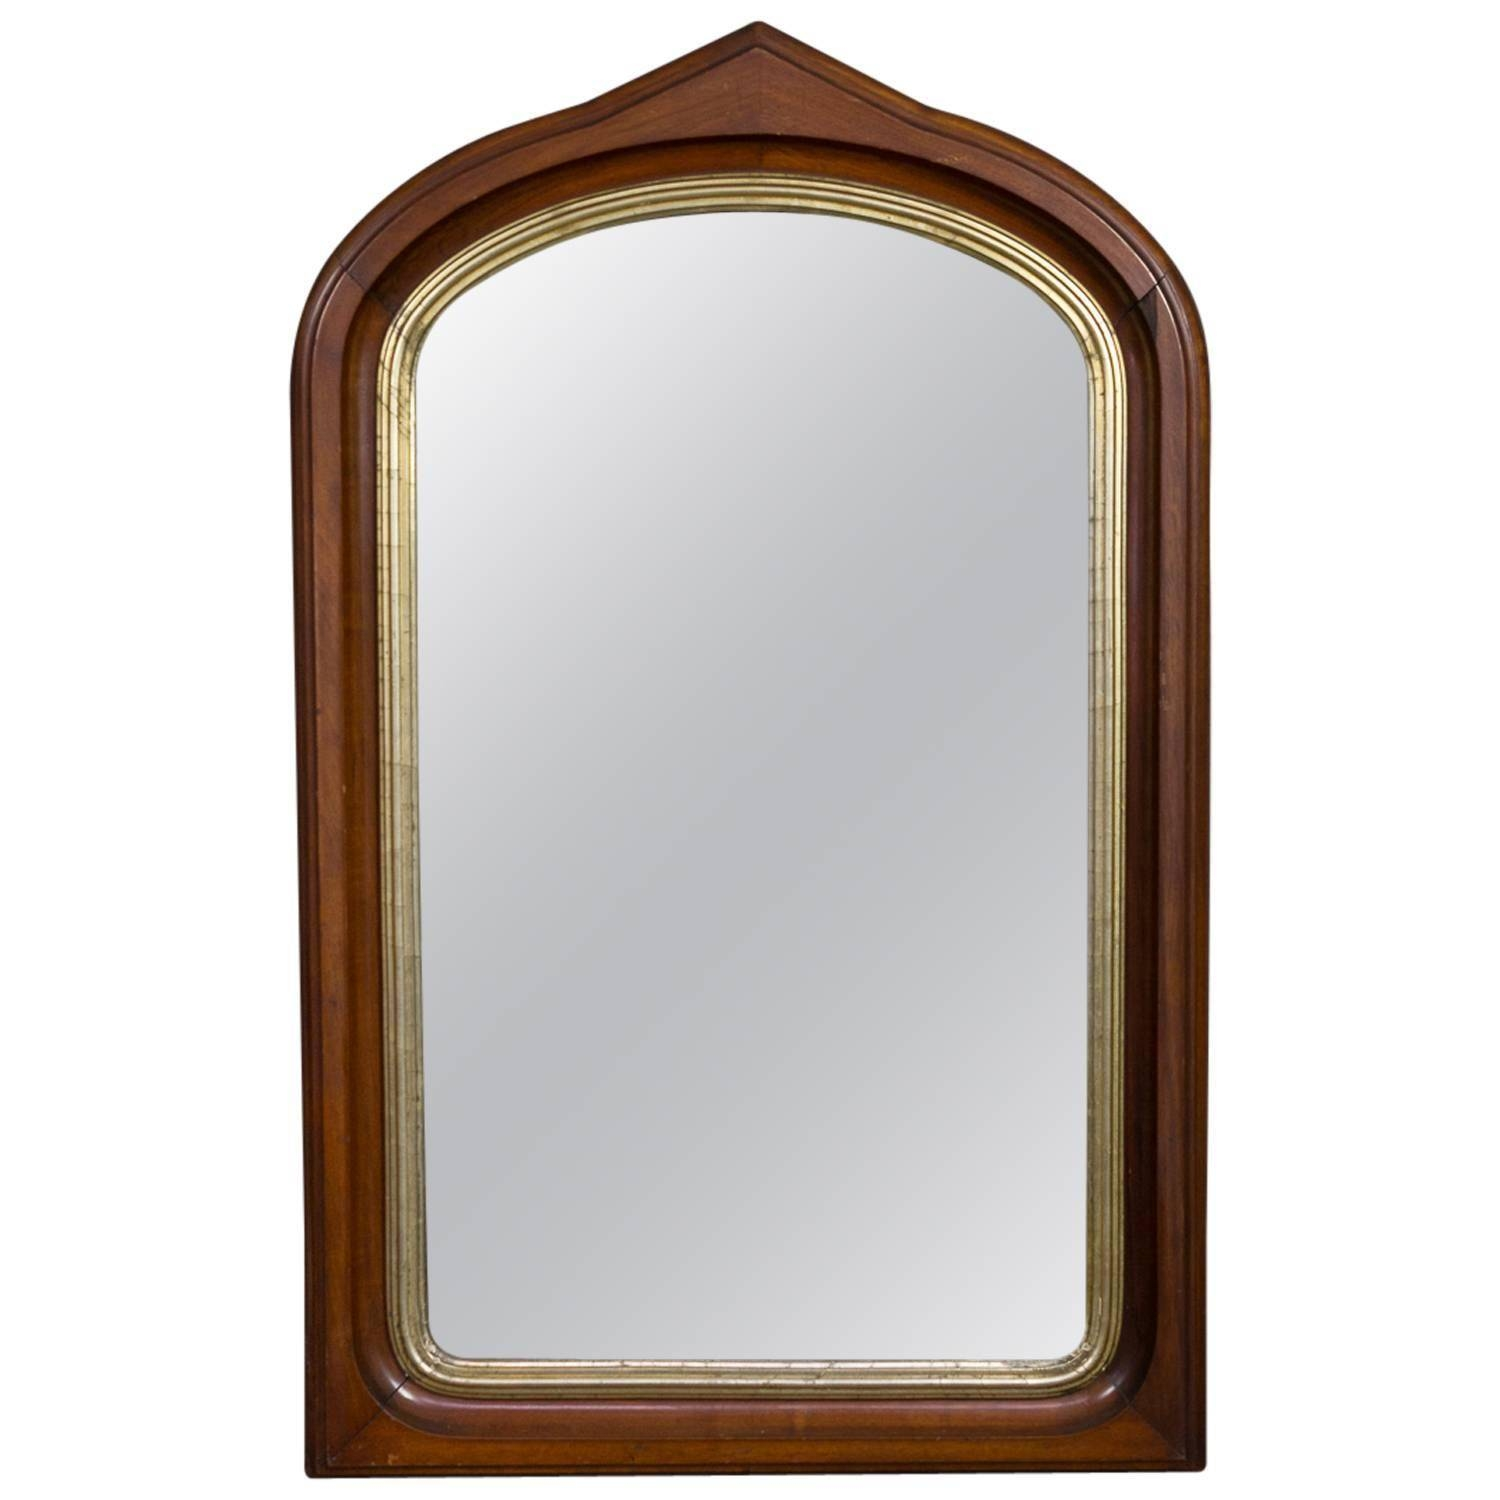 Gothic Revival Burl Wood Arched Wall Mirror At 1Stdibs inside Gothic Wall Mirrors (Image 15 of 25)